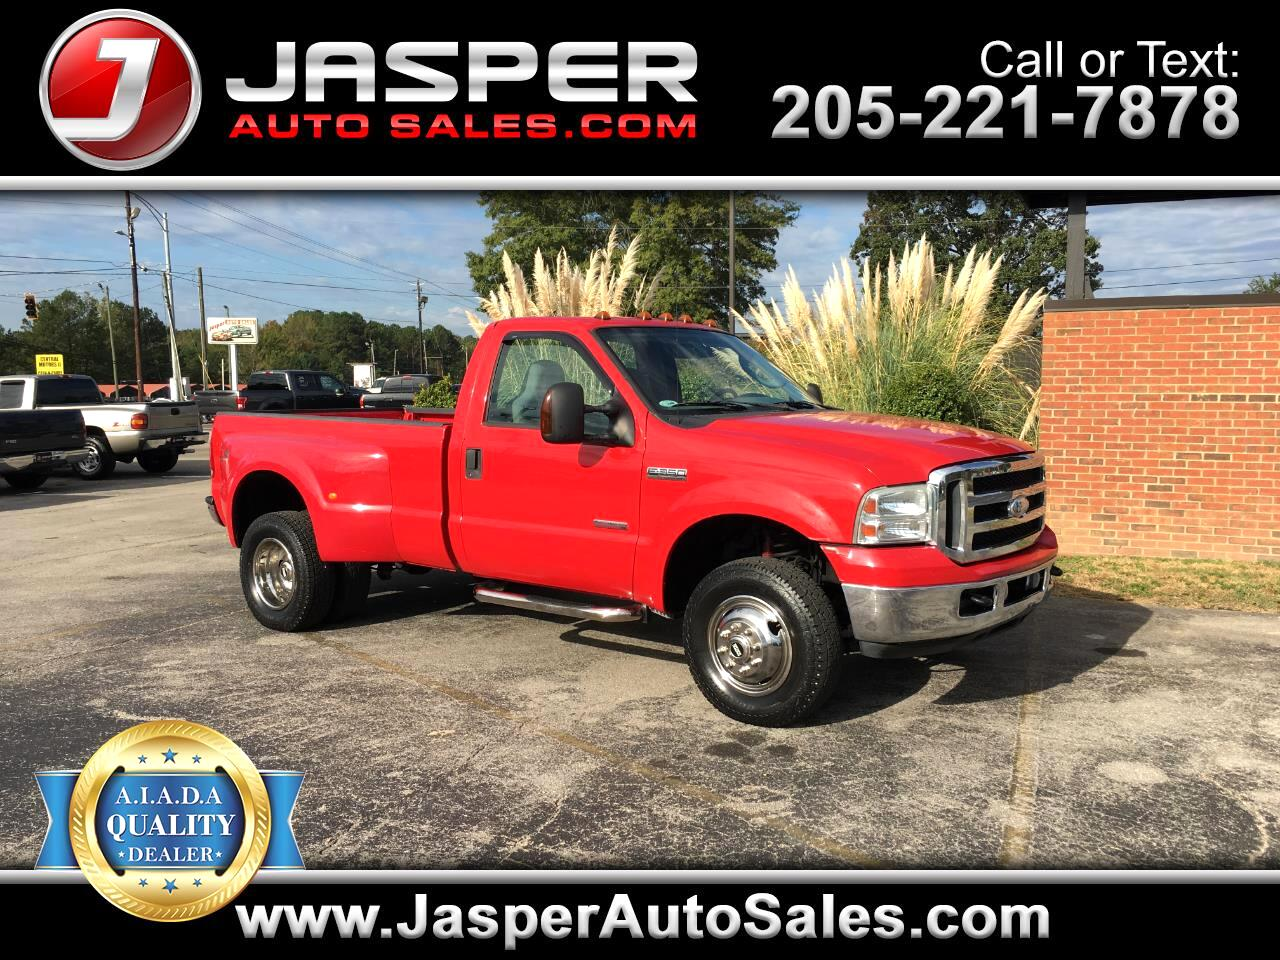 2006 Ford Super Duty F-350 DRW 4WD Reg Cab 137